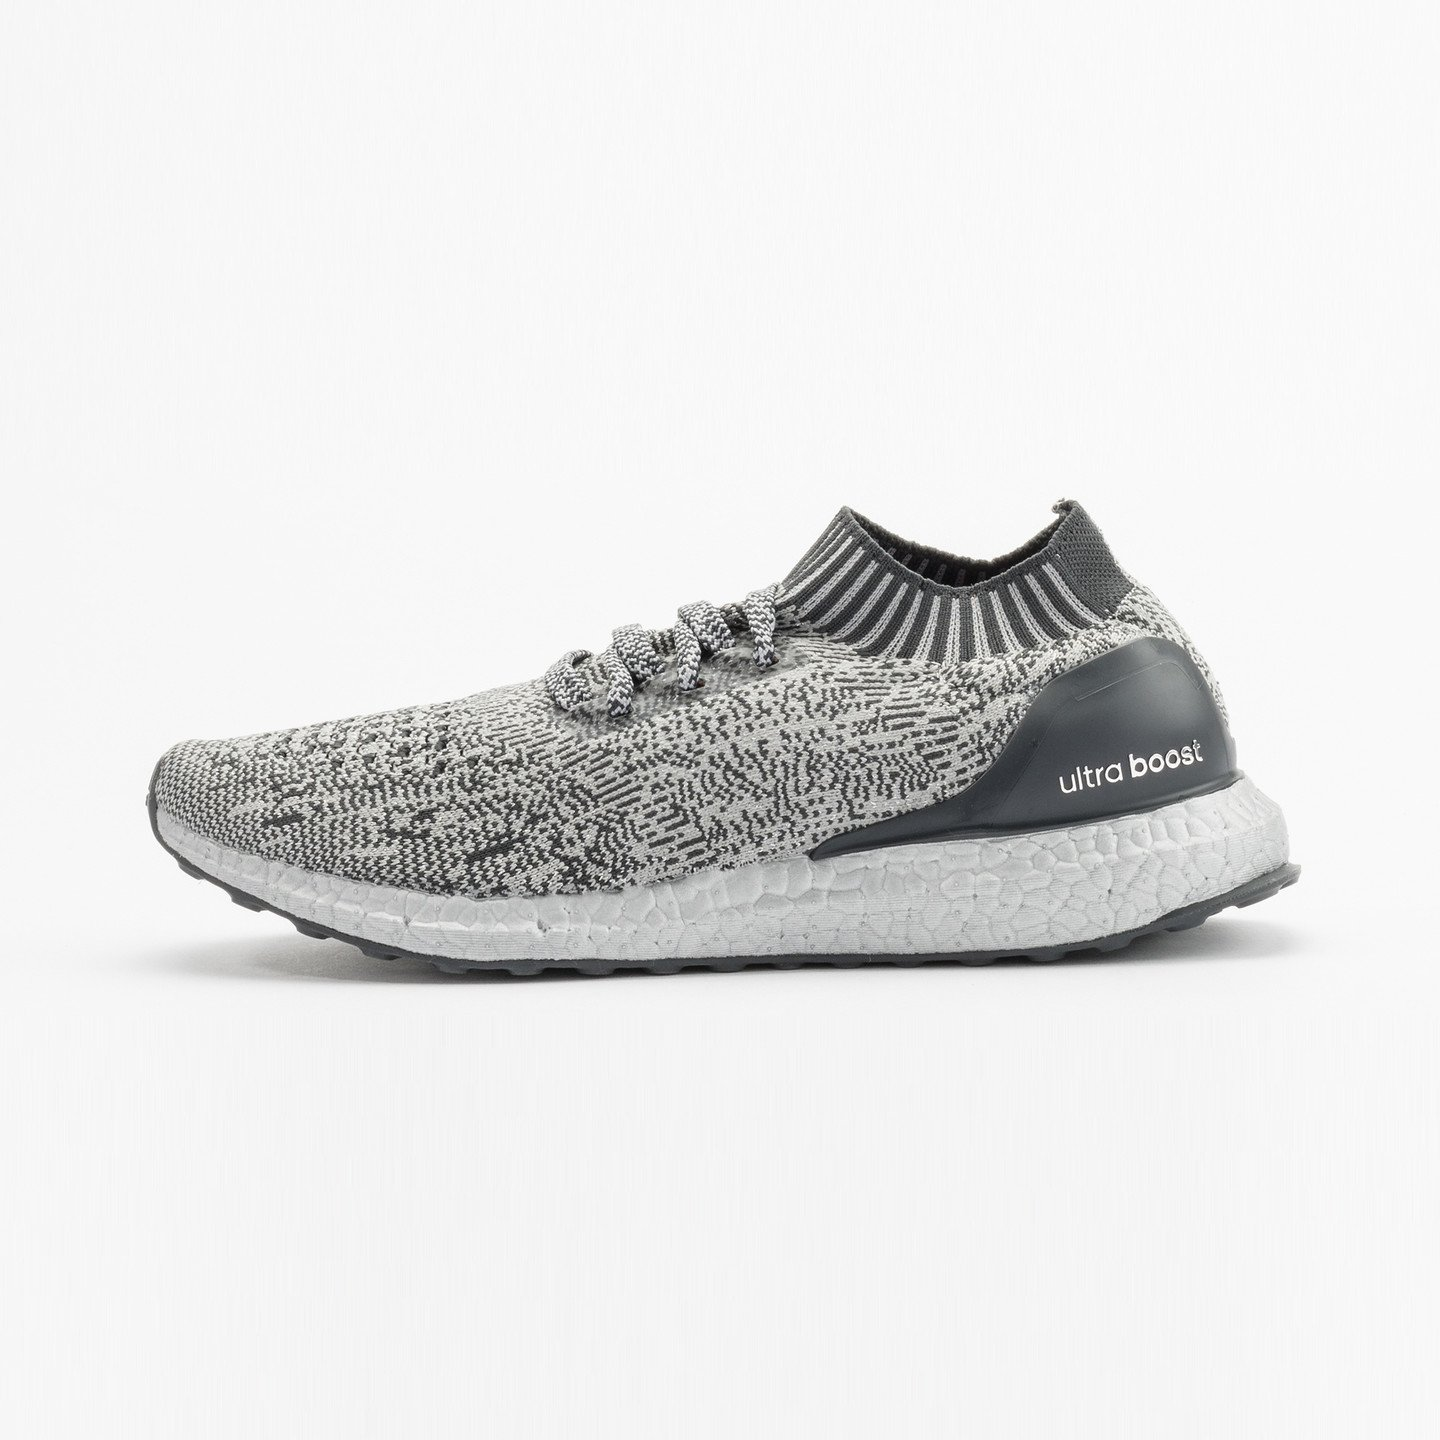 Adidas Ultra Boost Uncaged 'Super Bowl' Silver Grey BA7997-41.33